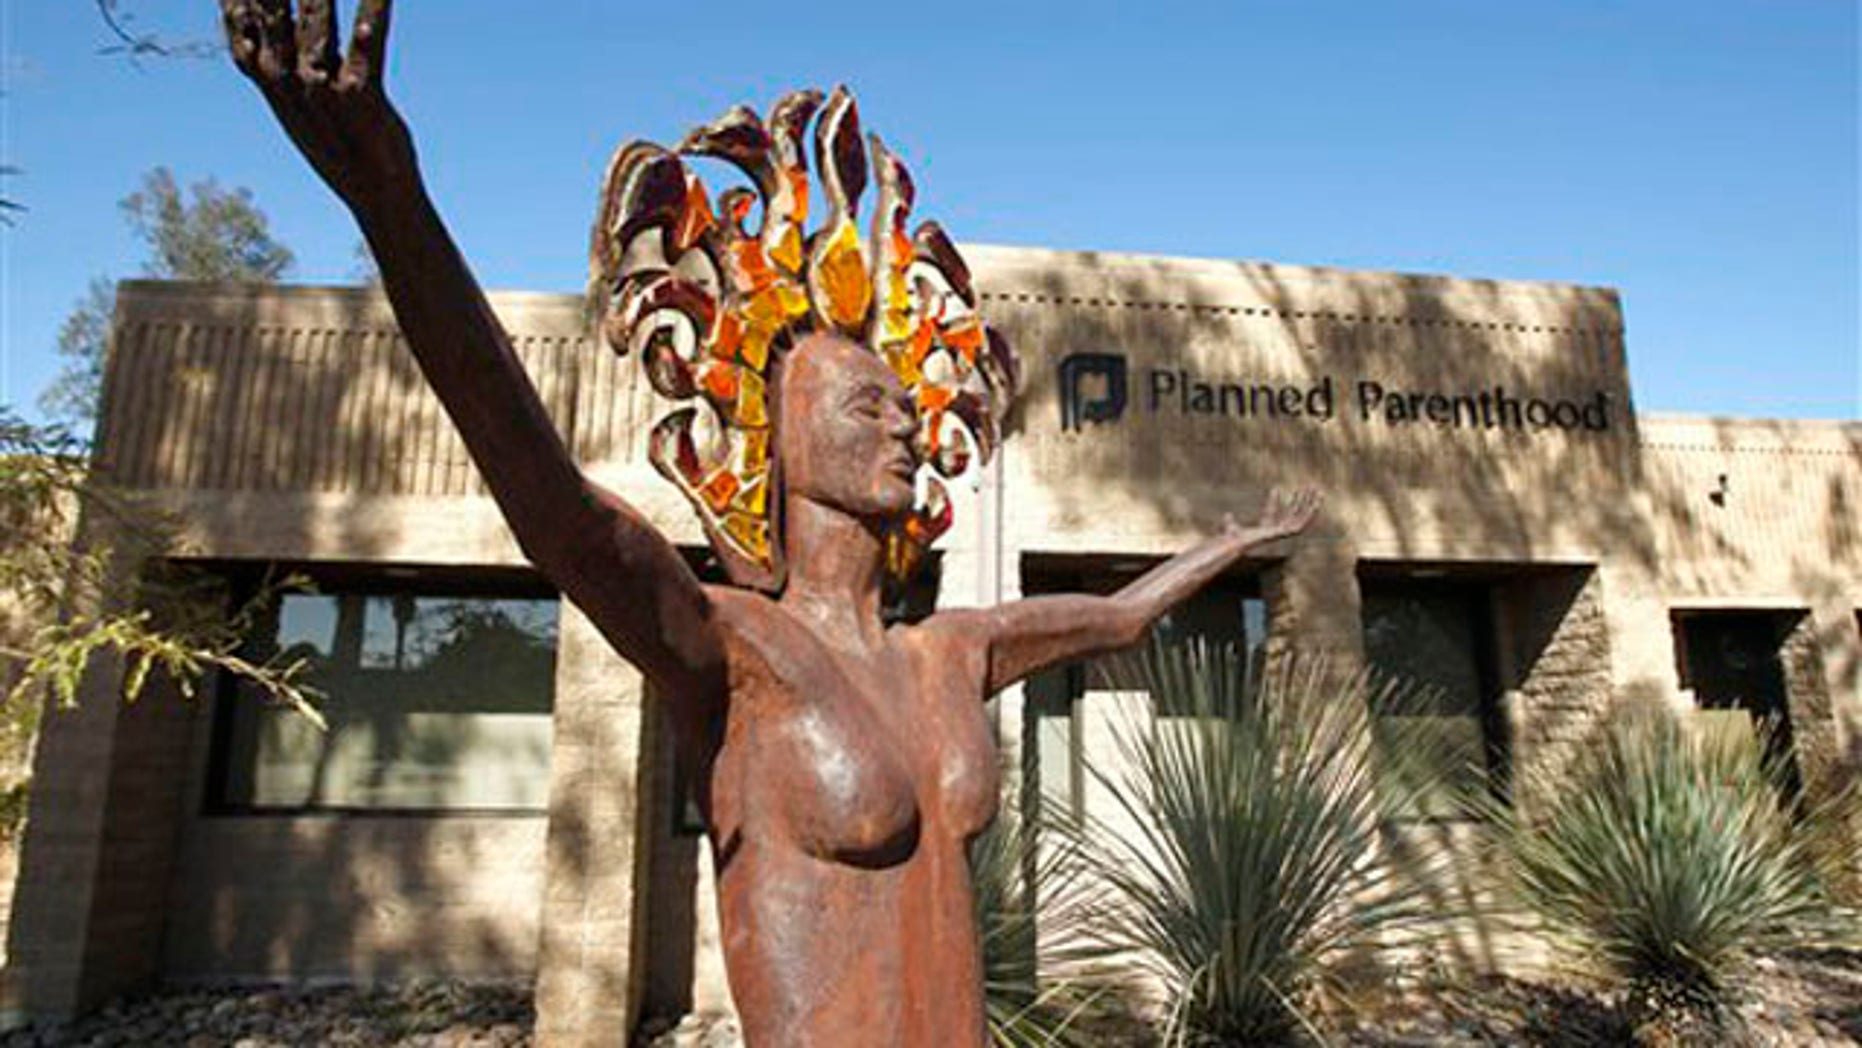 In this Jan. 23 2011 photo, a statue representing women's empowerment stands in front of a Planned Parenthood facility in Tucson, Ariz.